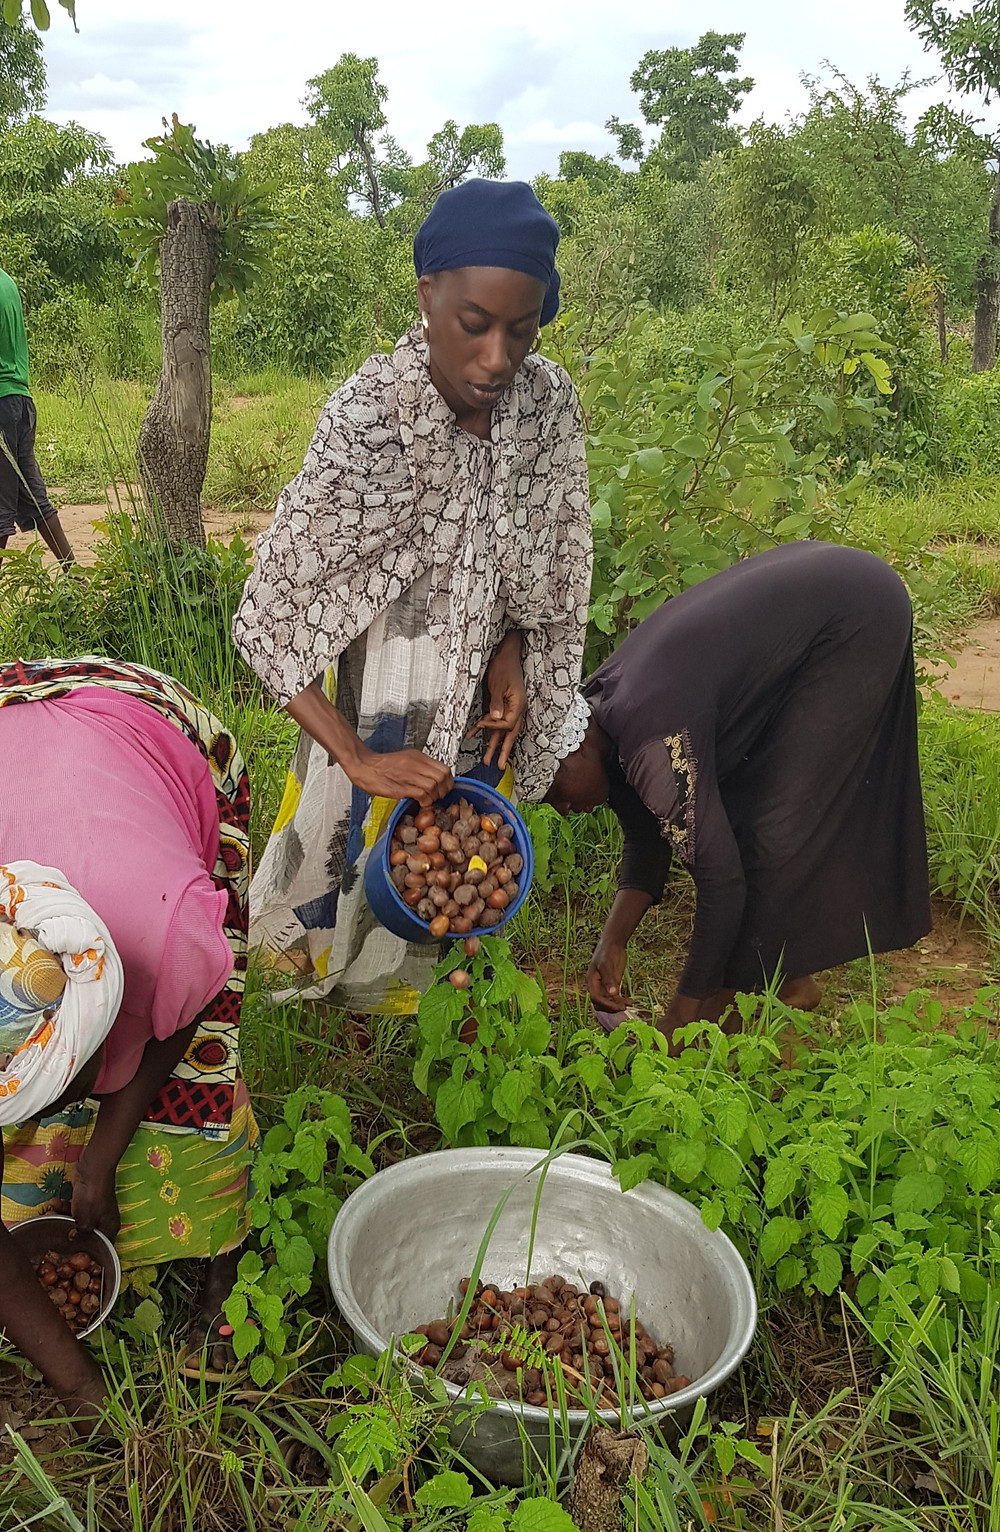 Maame Opoku picking shea nuts in the forest